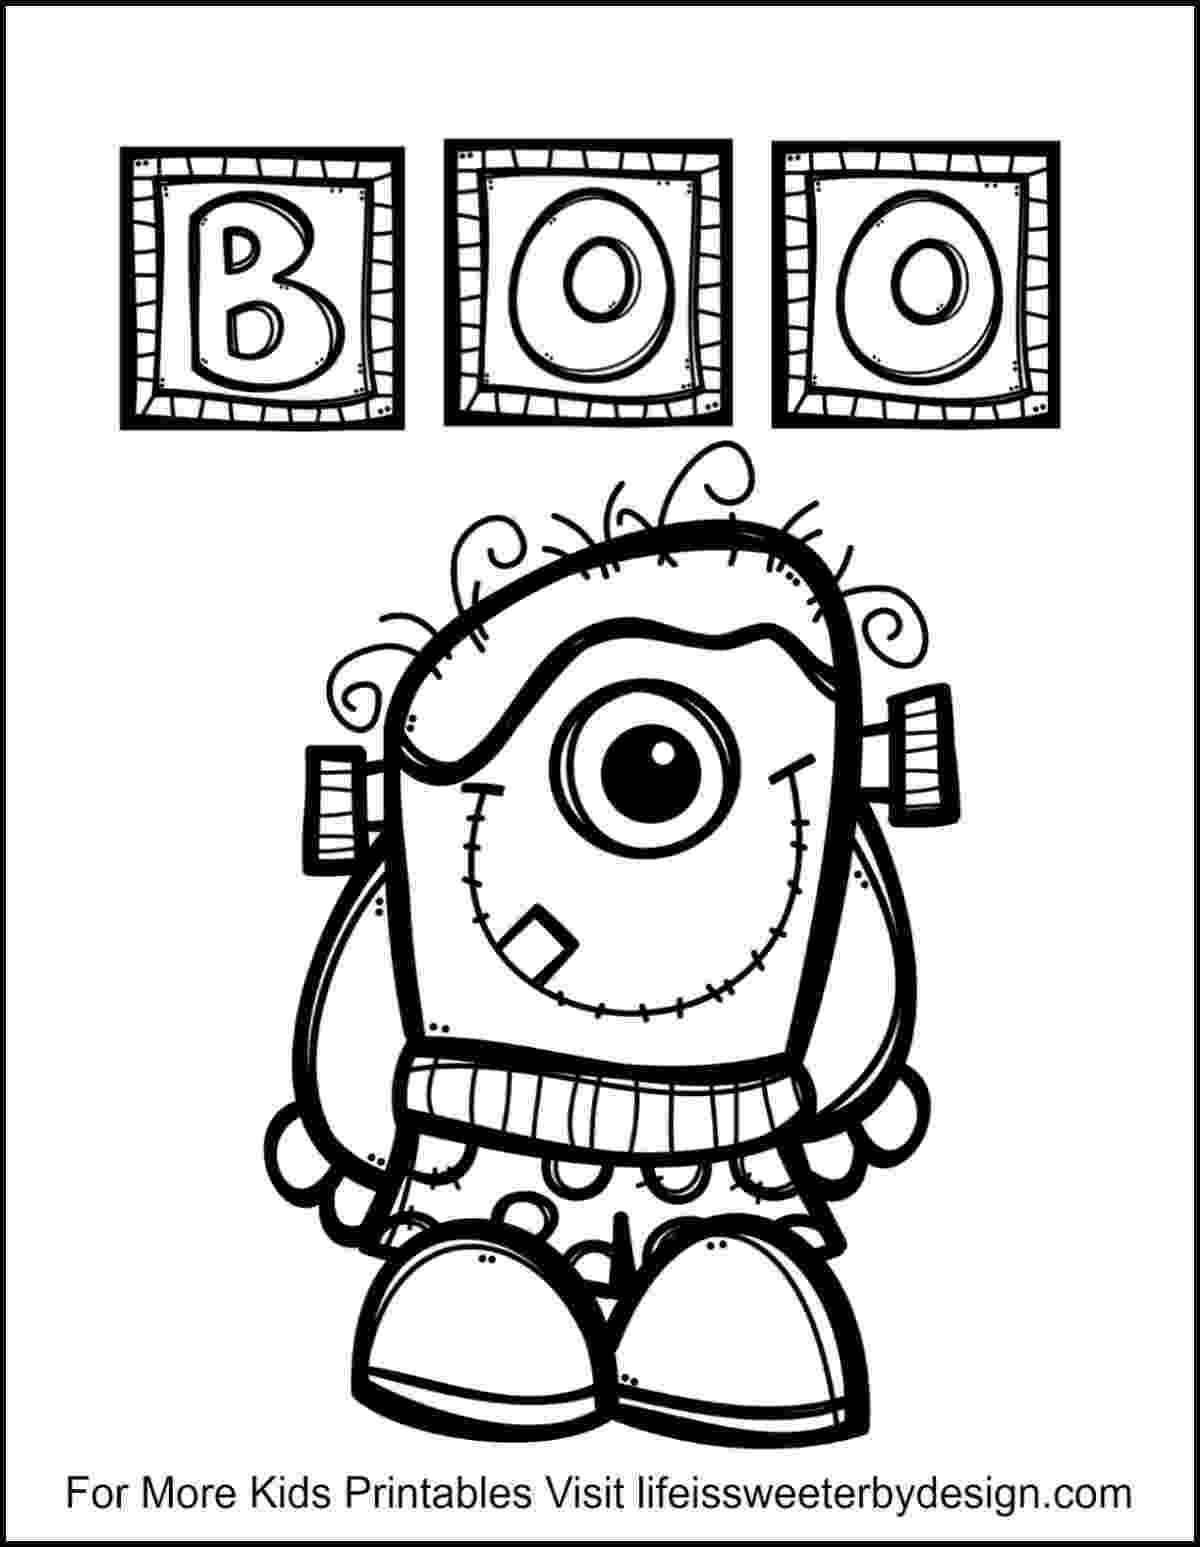 colouring pages for halloween free printable 5 pages instant download halloween coloring pages 5 pages for printable free halloween colouring